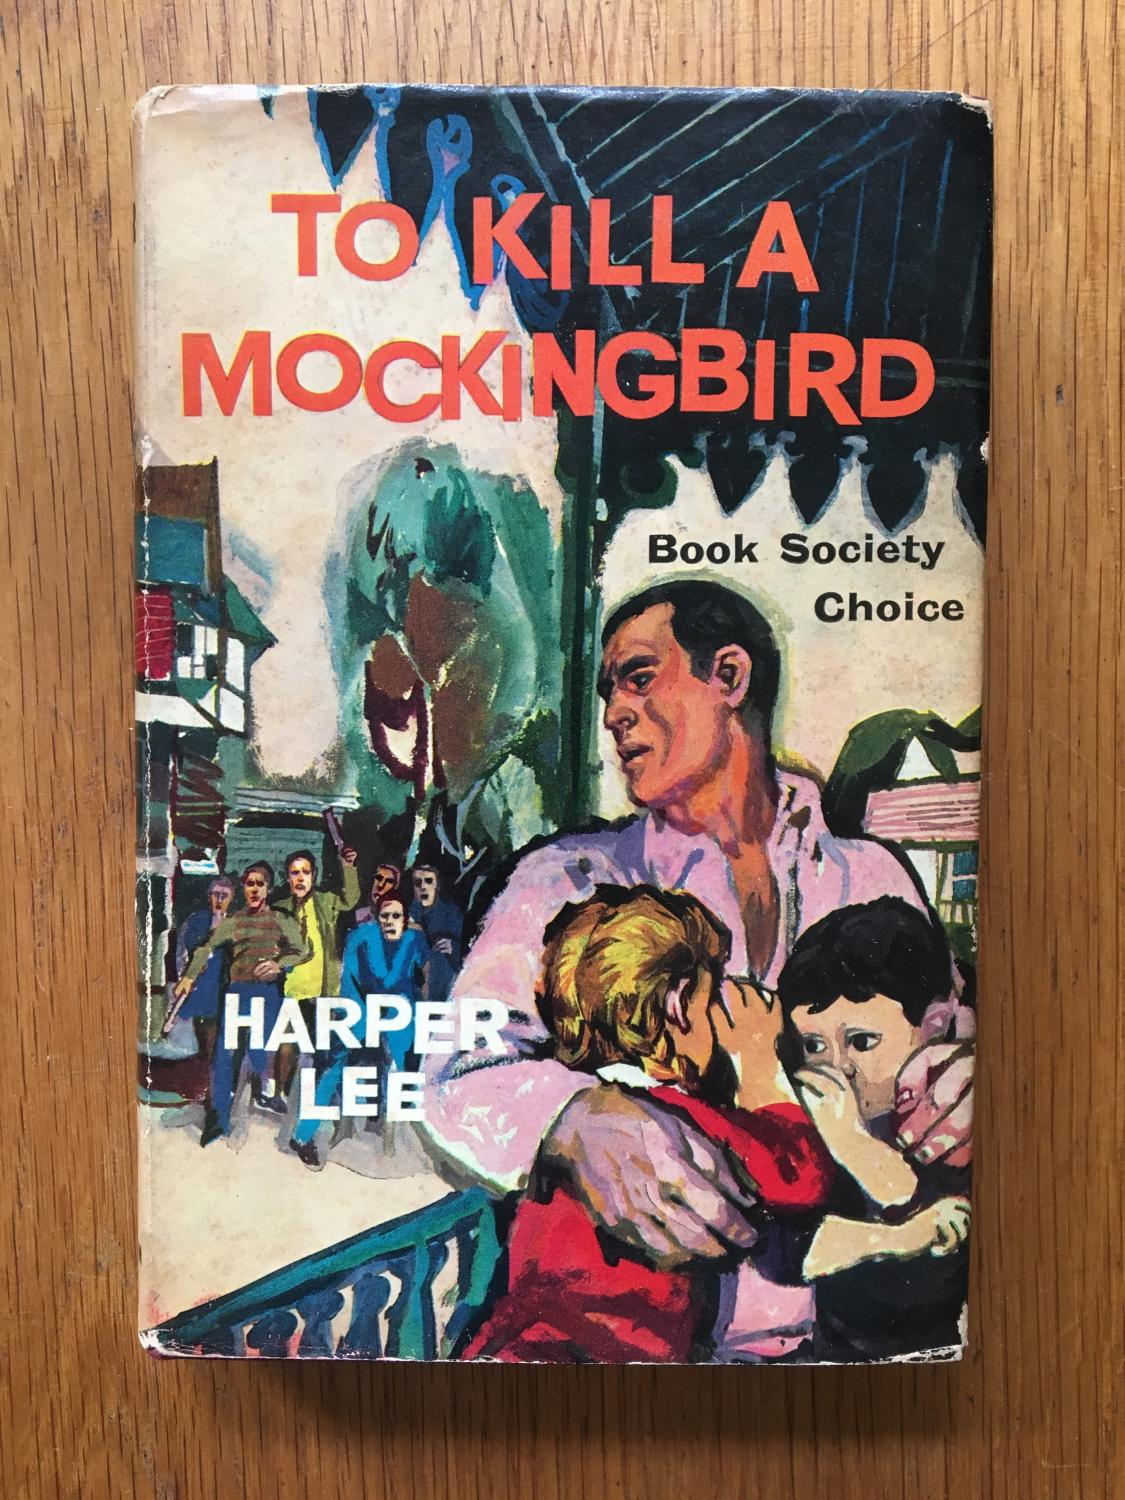 the societal boundaries of man in to kill a mockingbird by harper lee Get free homework help on harper lee's to kill a mockingbird: and societal ideals than a black man of a violent crime, lee expertly explores.